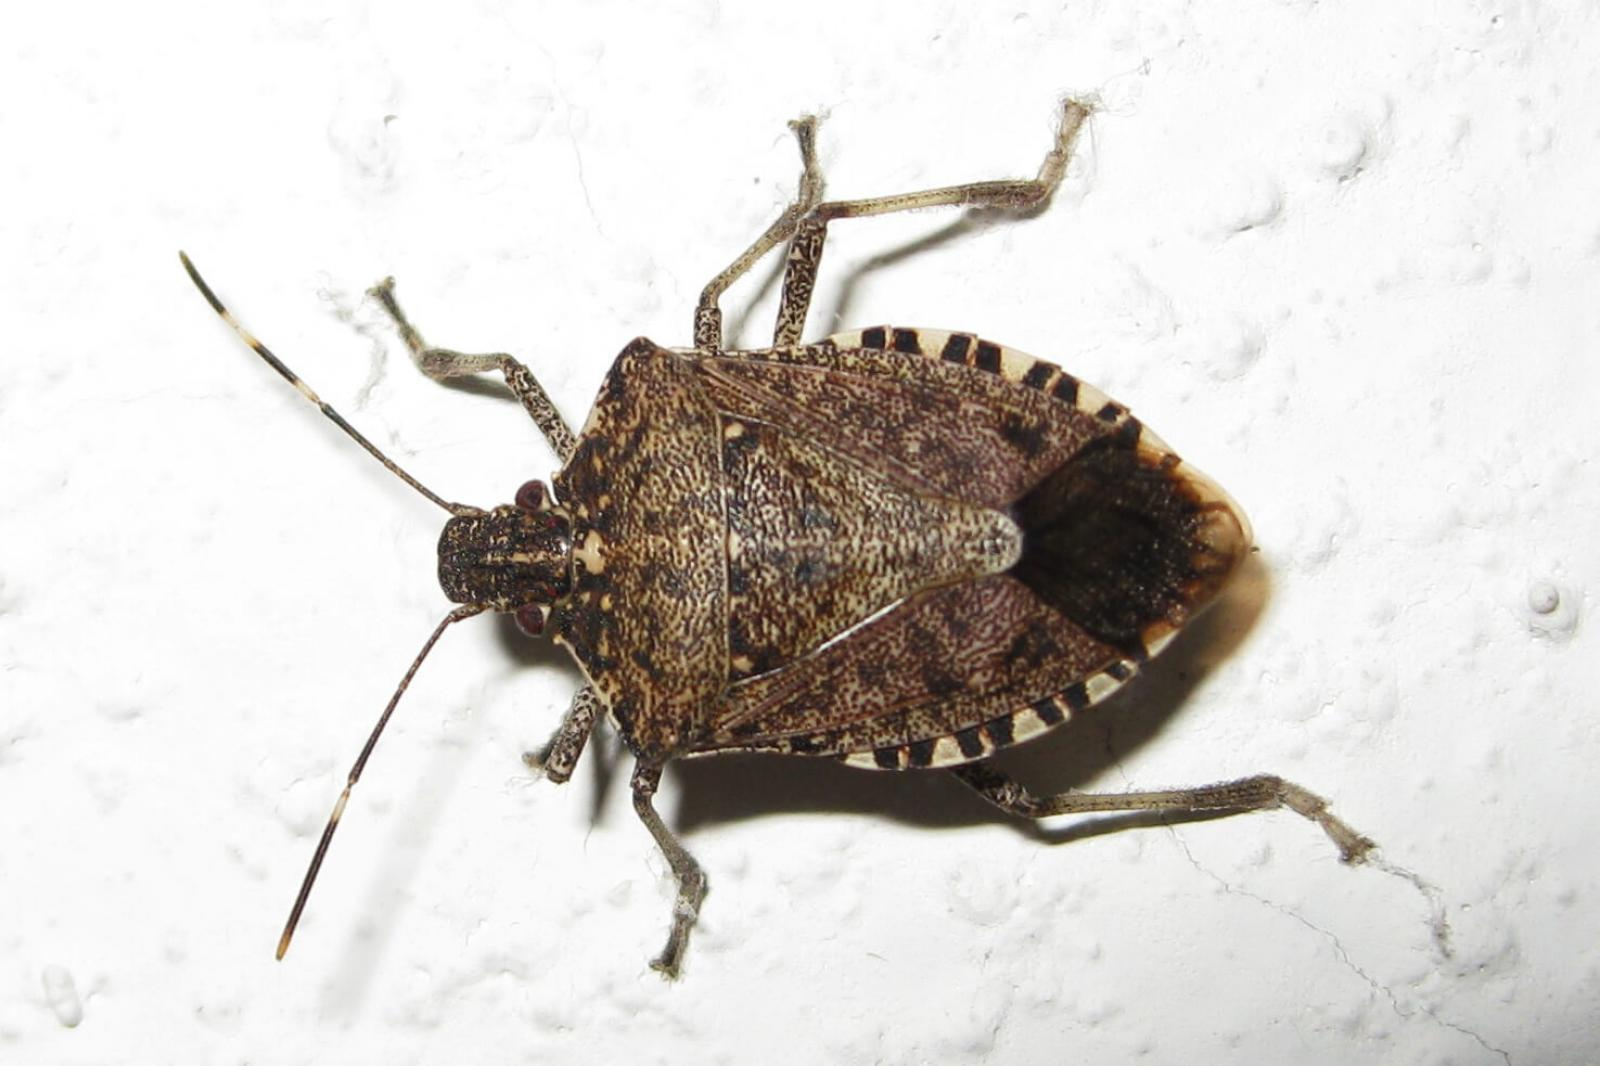 Brown marmorated stink bug confirmed in Ontario